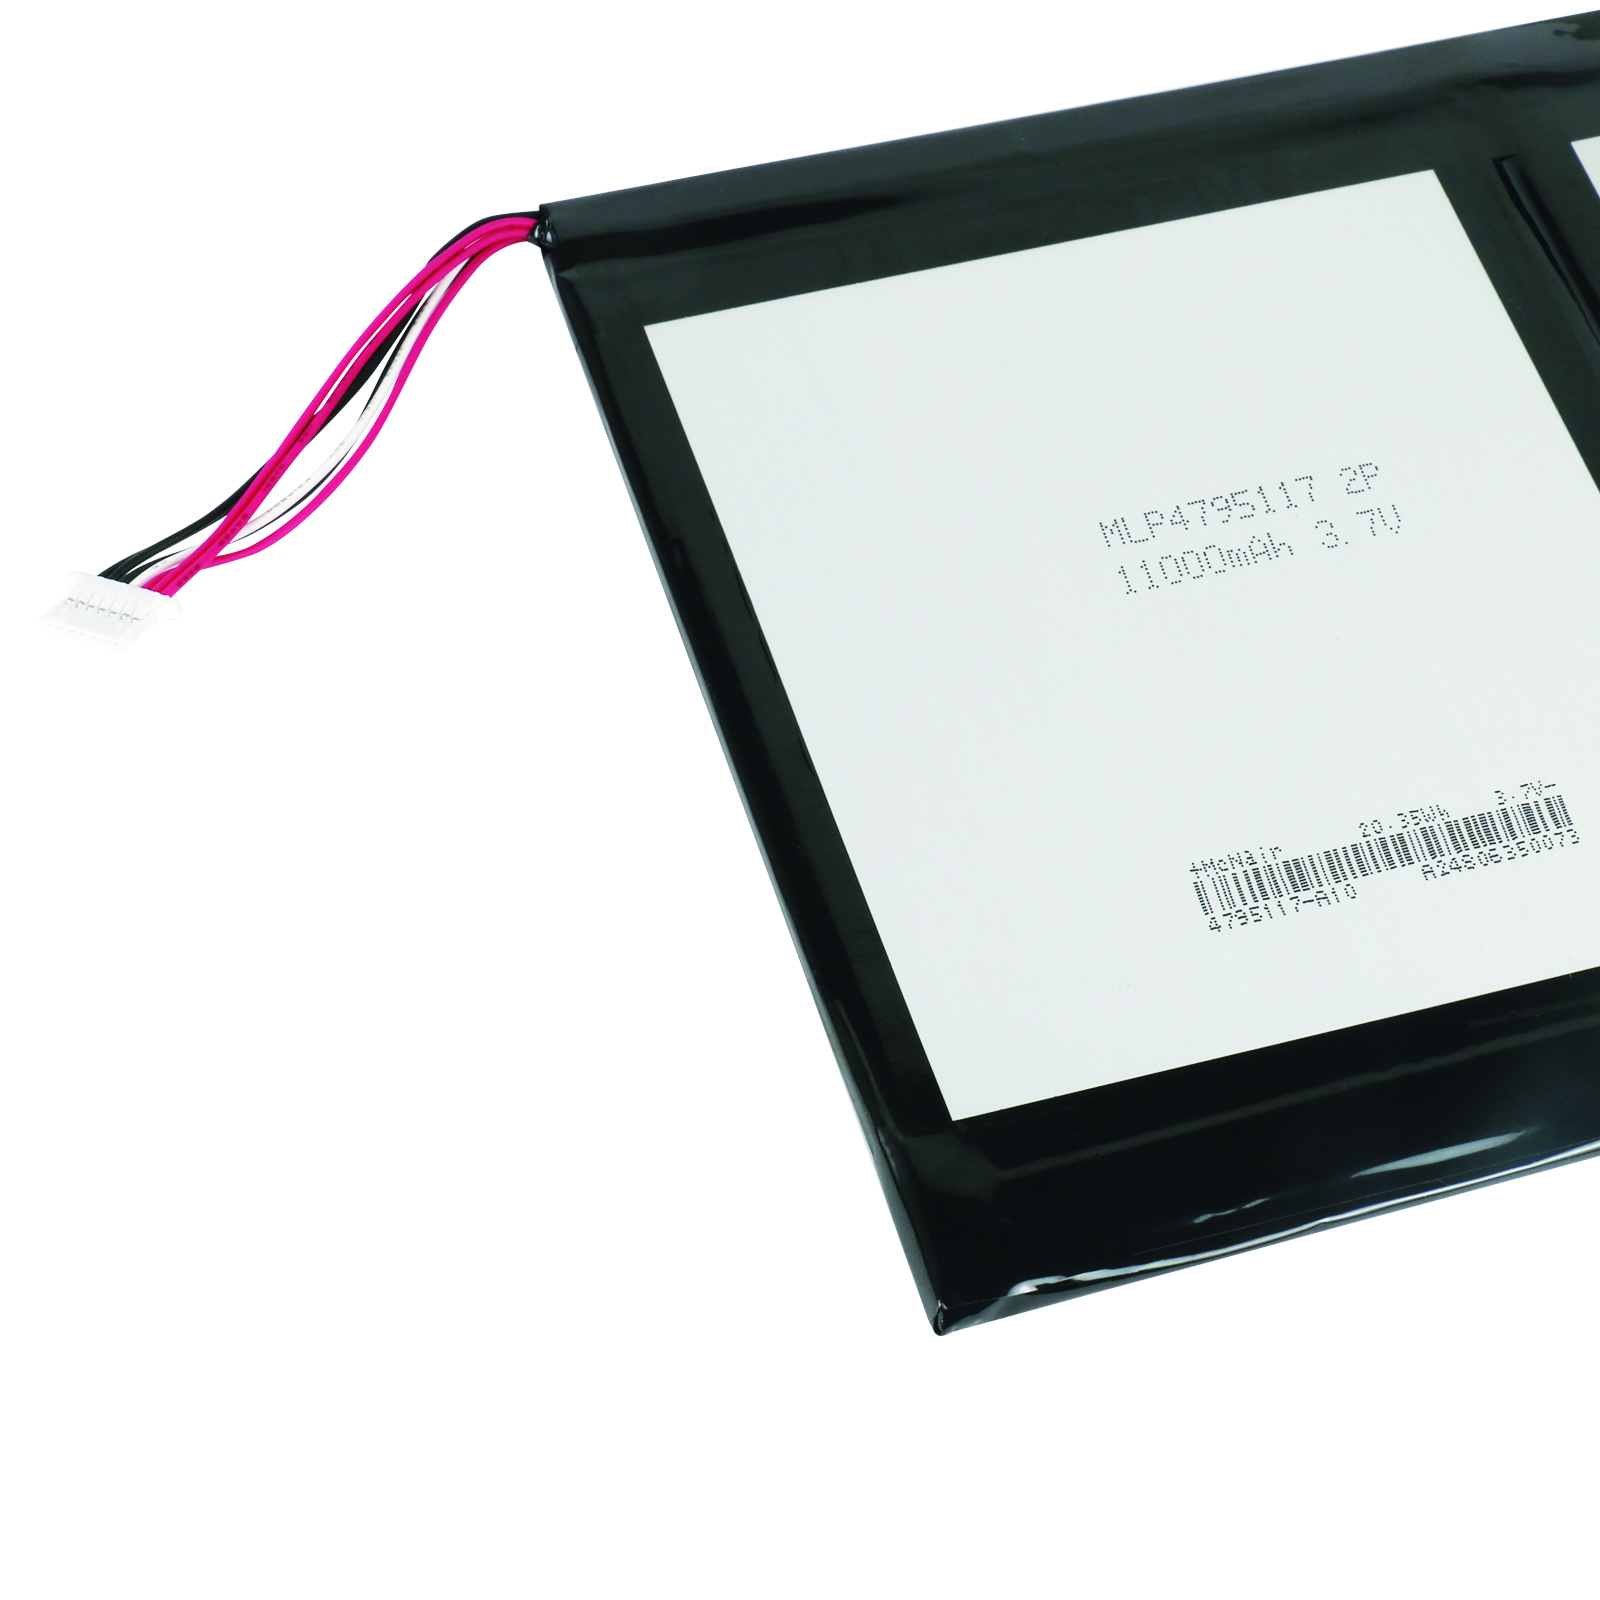 Replacement Battery for Autel MaxiSys CV,MaxiSys MS908,MaxiSys MS908P Pro